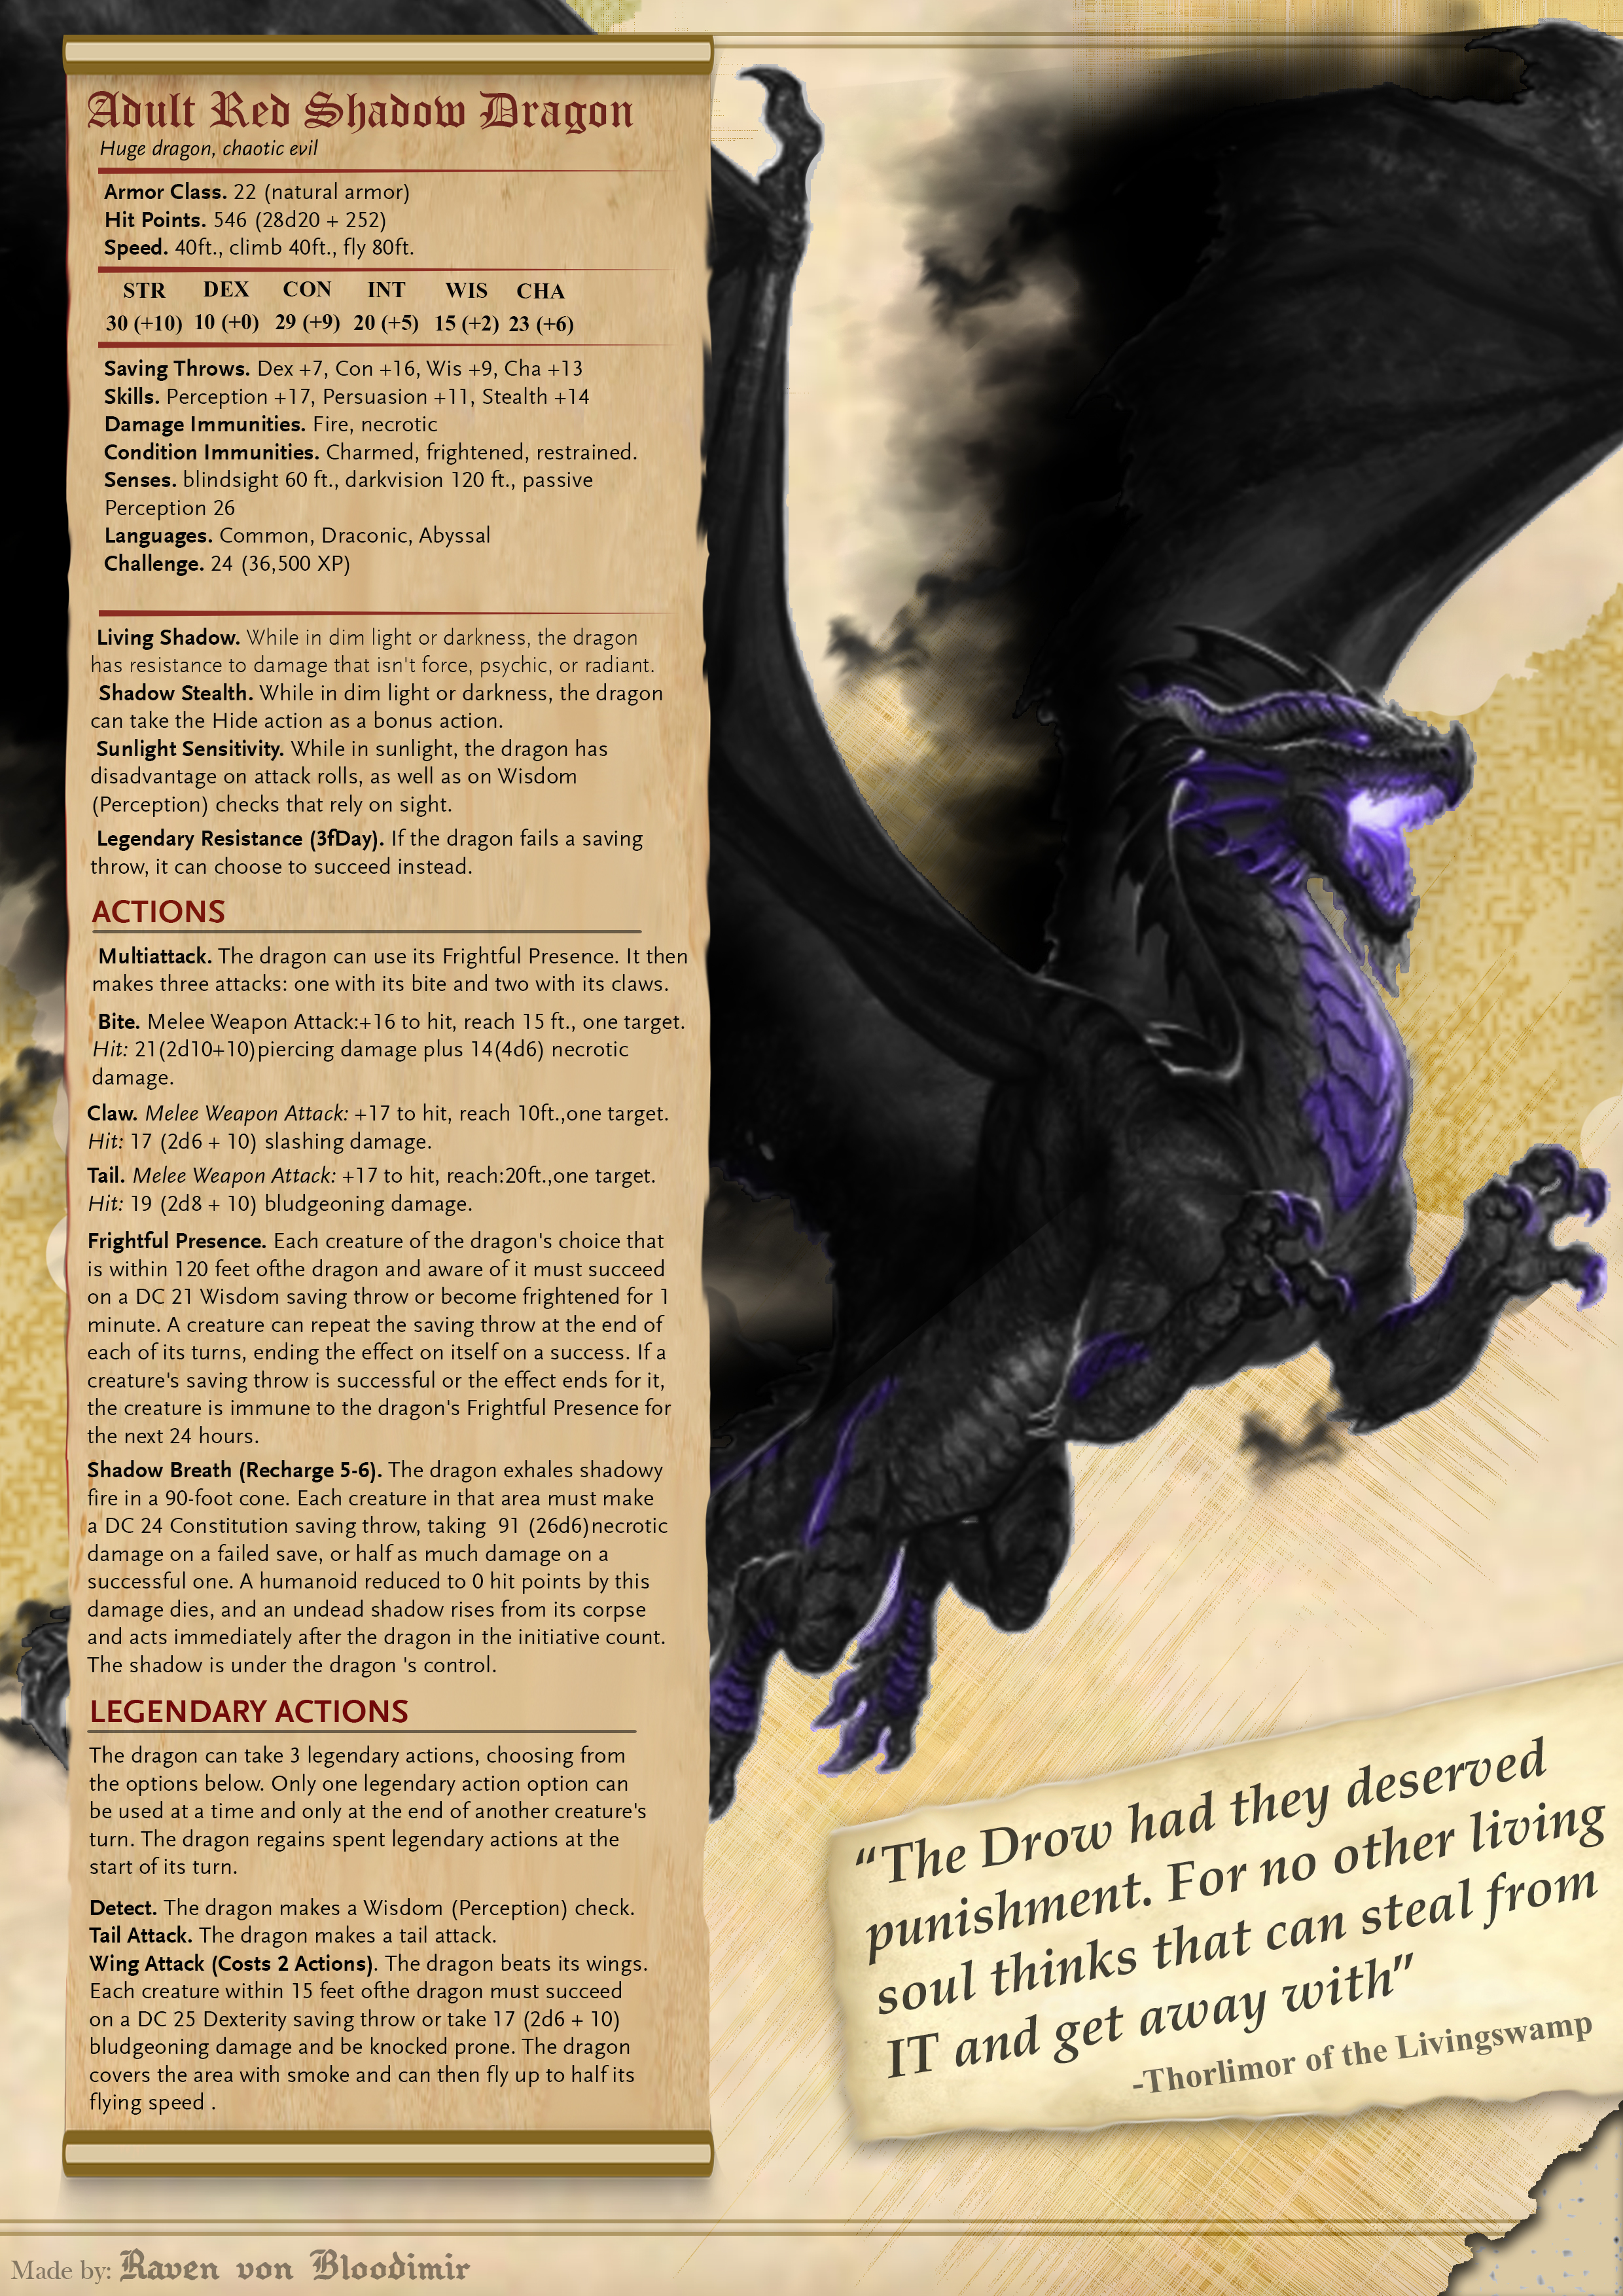 Dnd Red Dragon: Adult Red Shadow Dragon 5E DnD By RavenVonBloodimir On